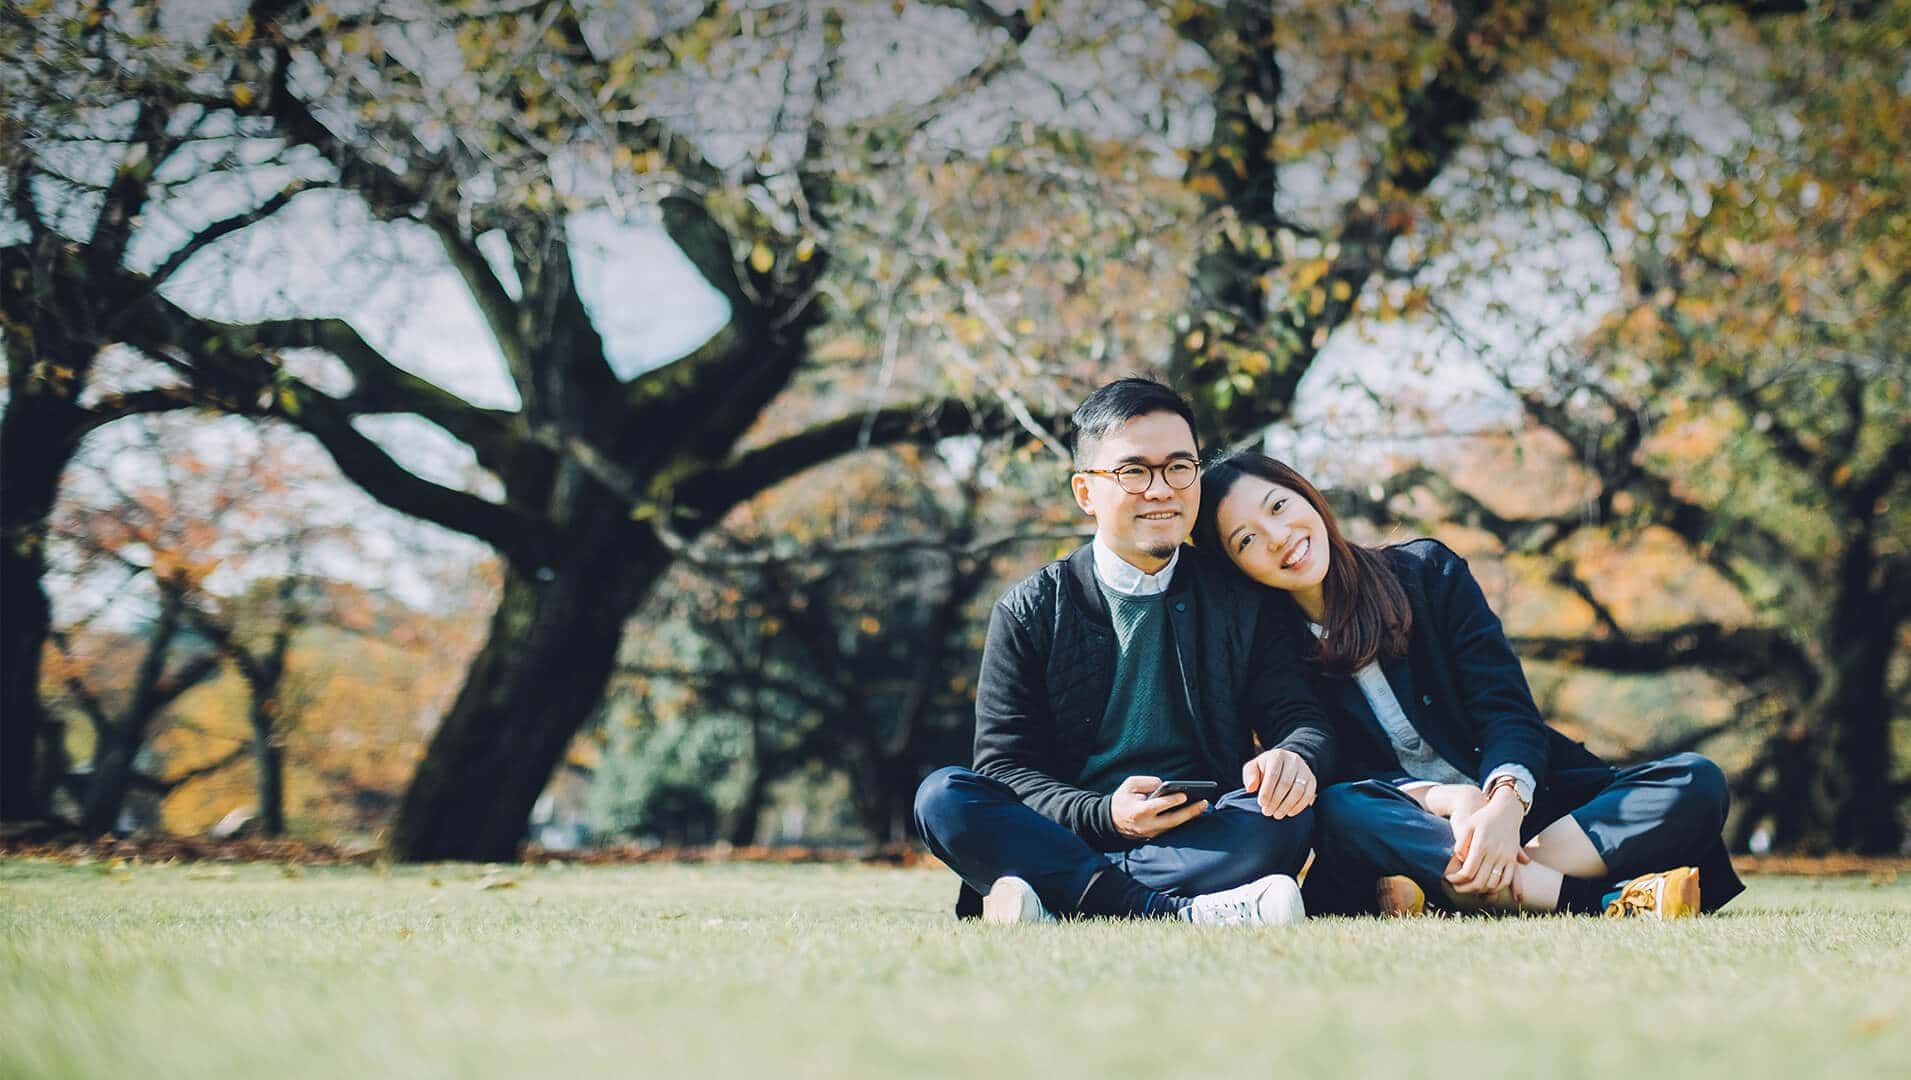 Japanese dating symbolized by a man and woman sitting cross-legged next to each other on a green field in UK